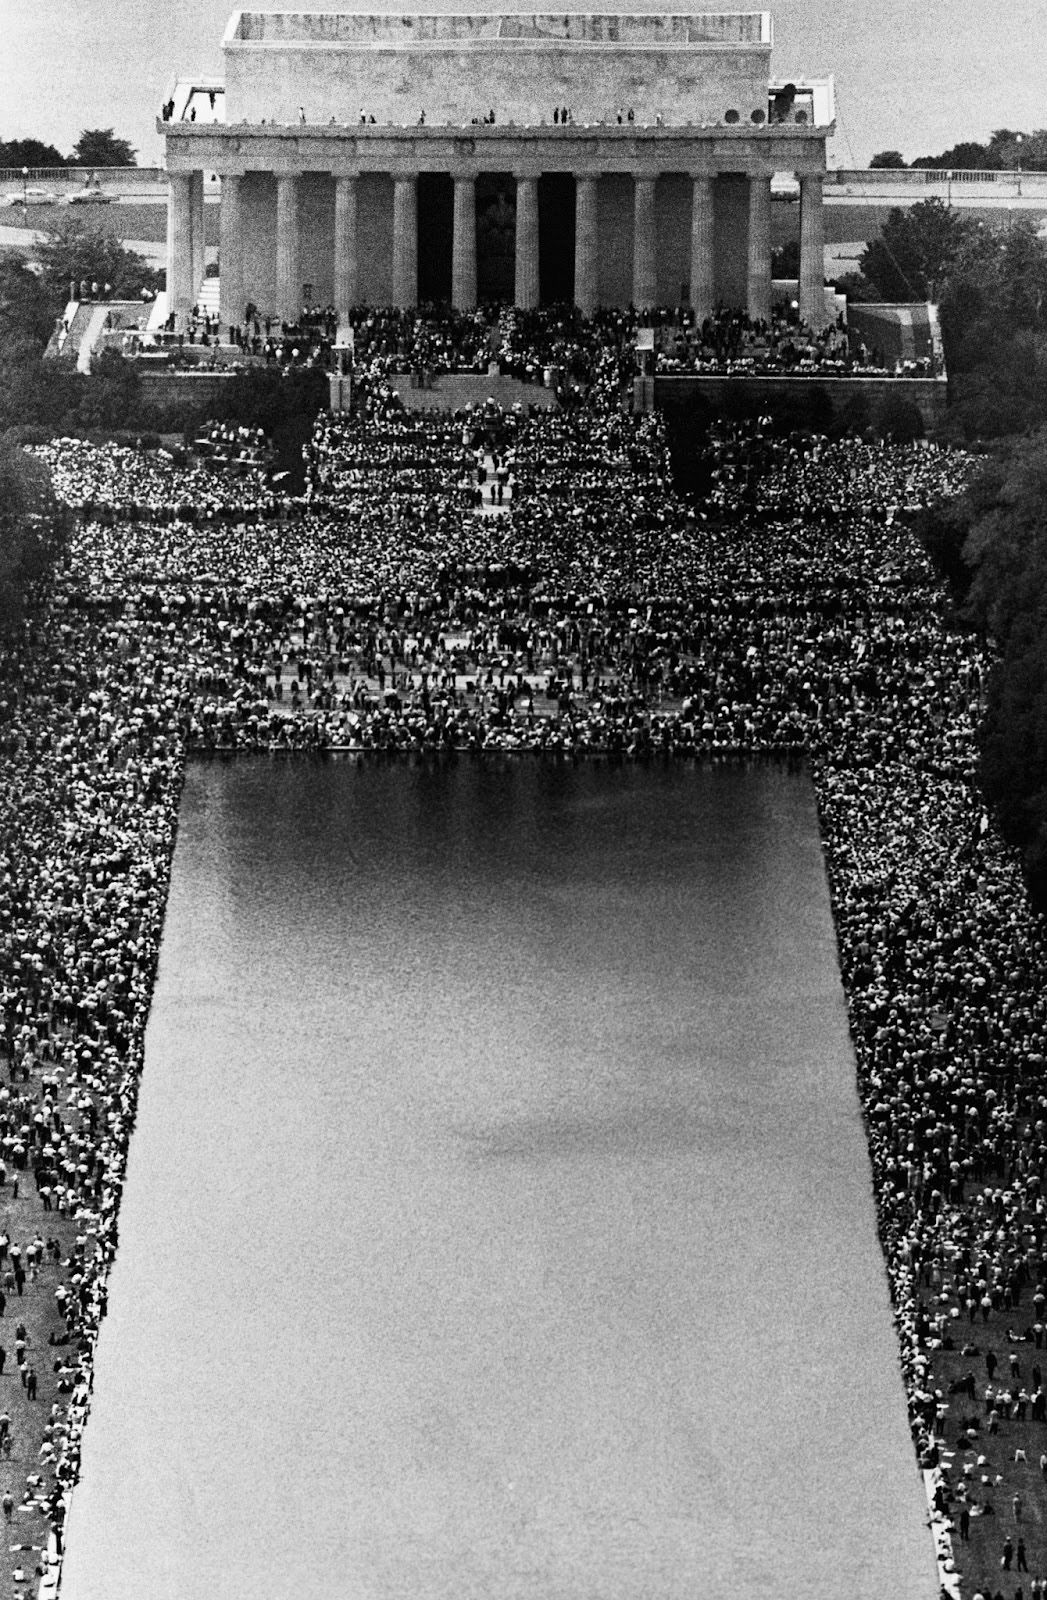 Dr Martin Luther King Jr Gives His I Have A Dream Speech At The